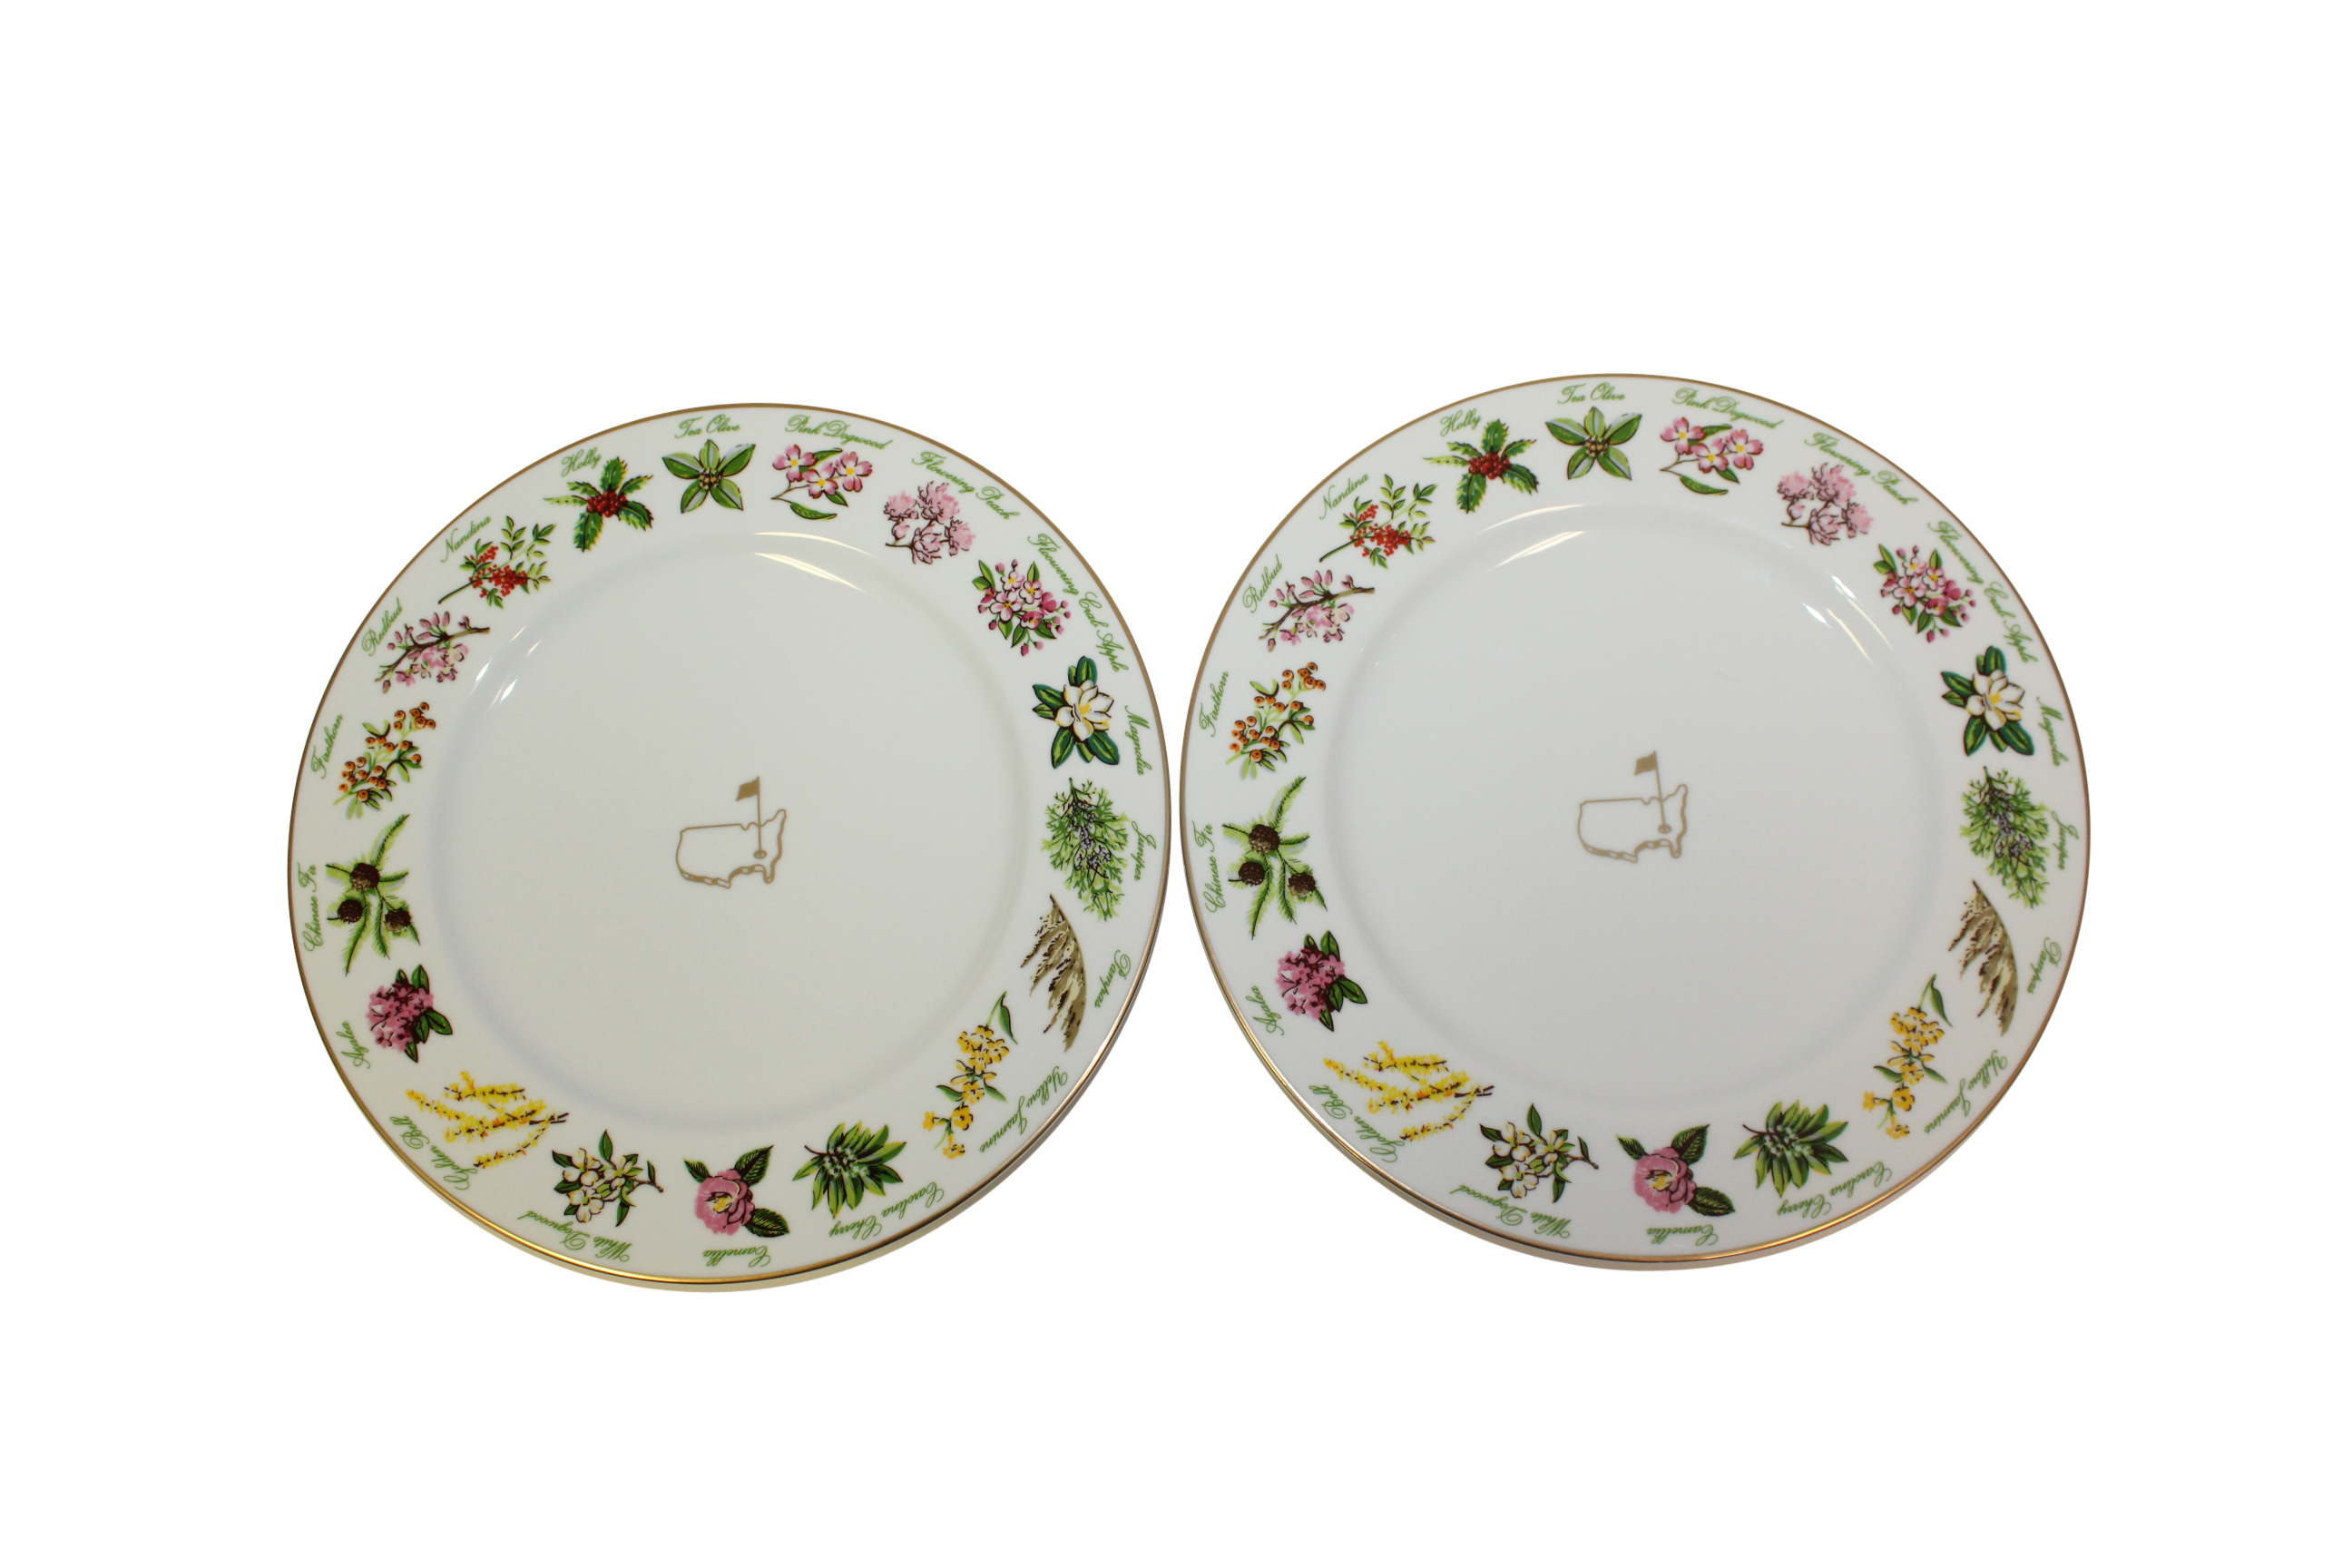 Plates in Original Box 2016 Masters Tournament Member Gift - Two Tiffany u0026 Co.  sc 1 st  The Golf Auction & Lot Detail - 2016 Masters Tournament Member Gift - Two Tiffany u0026 Co ...